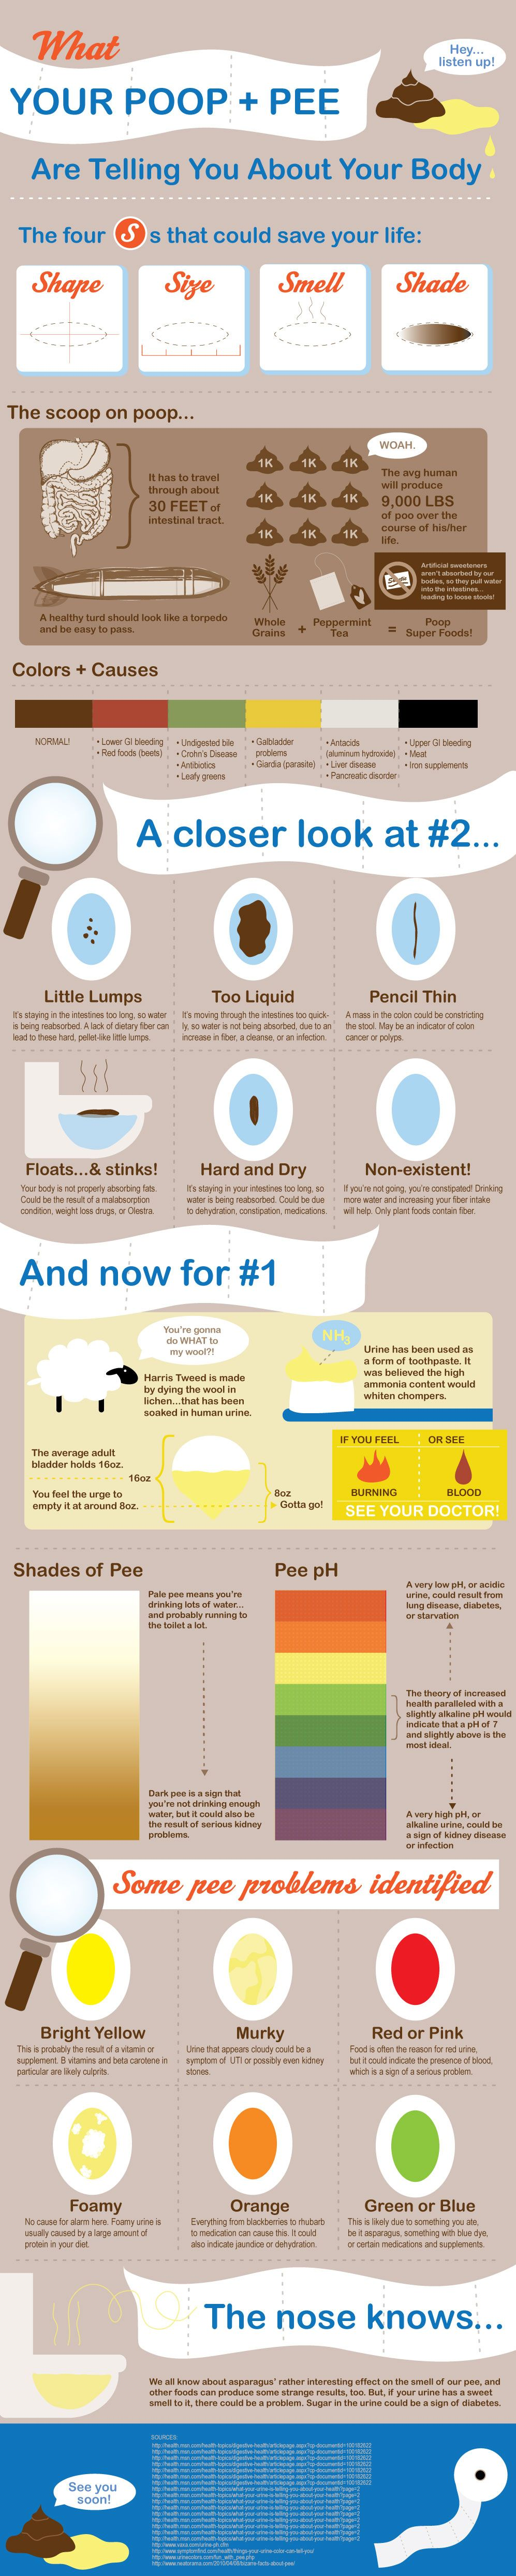 What Your Poop And Pee Are Telling You About Your Body - How much is the human body worth infographic